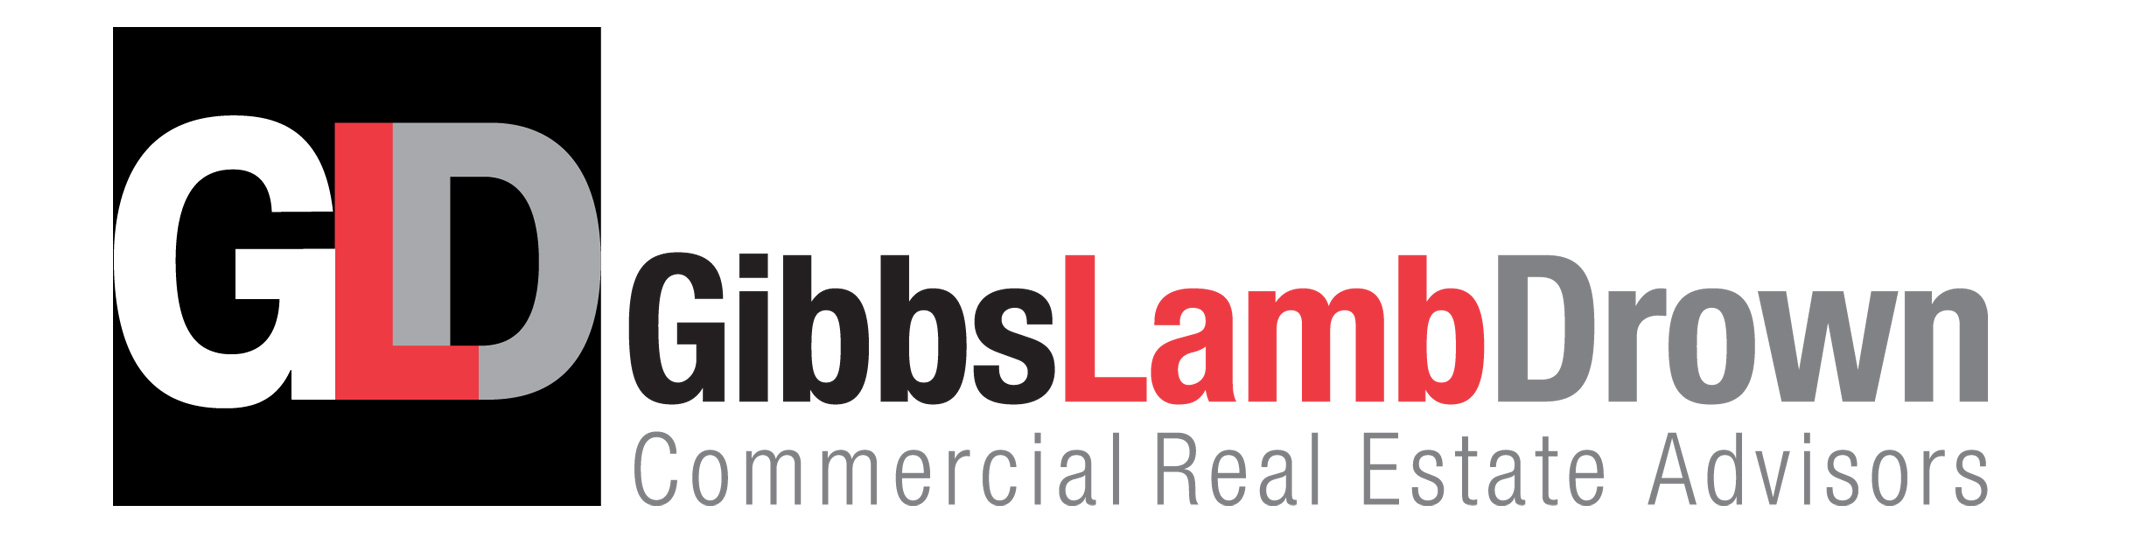 Gibbs Lamb Drown GLD Commercial Real Estate Advisors